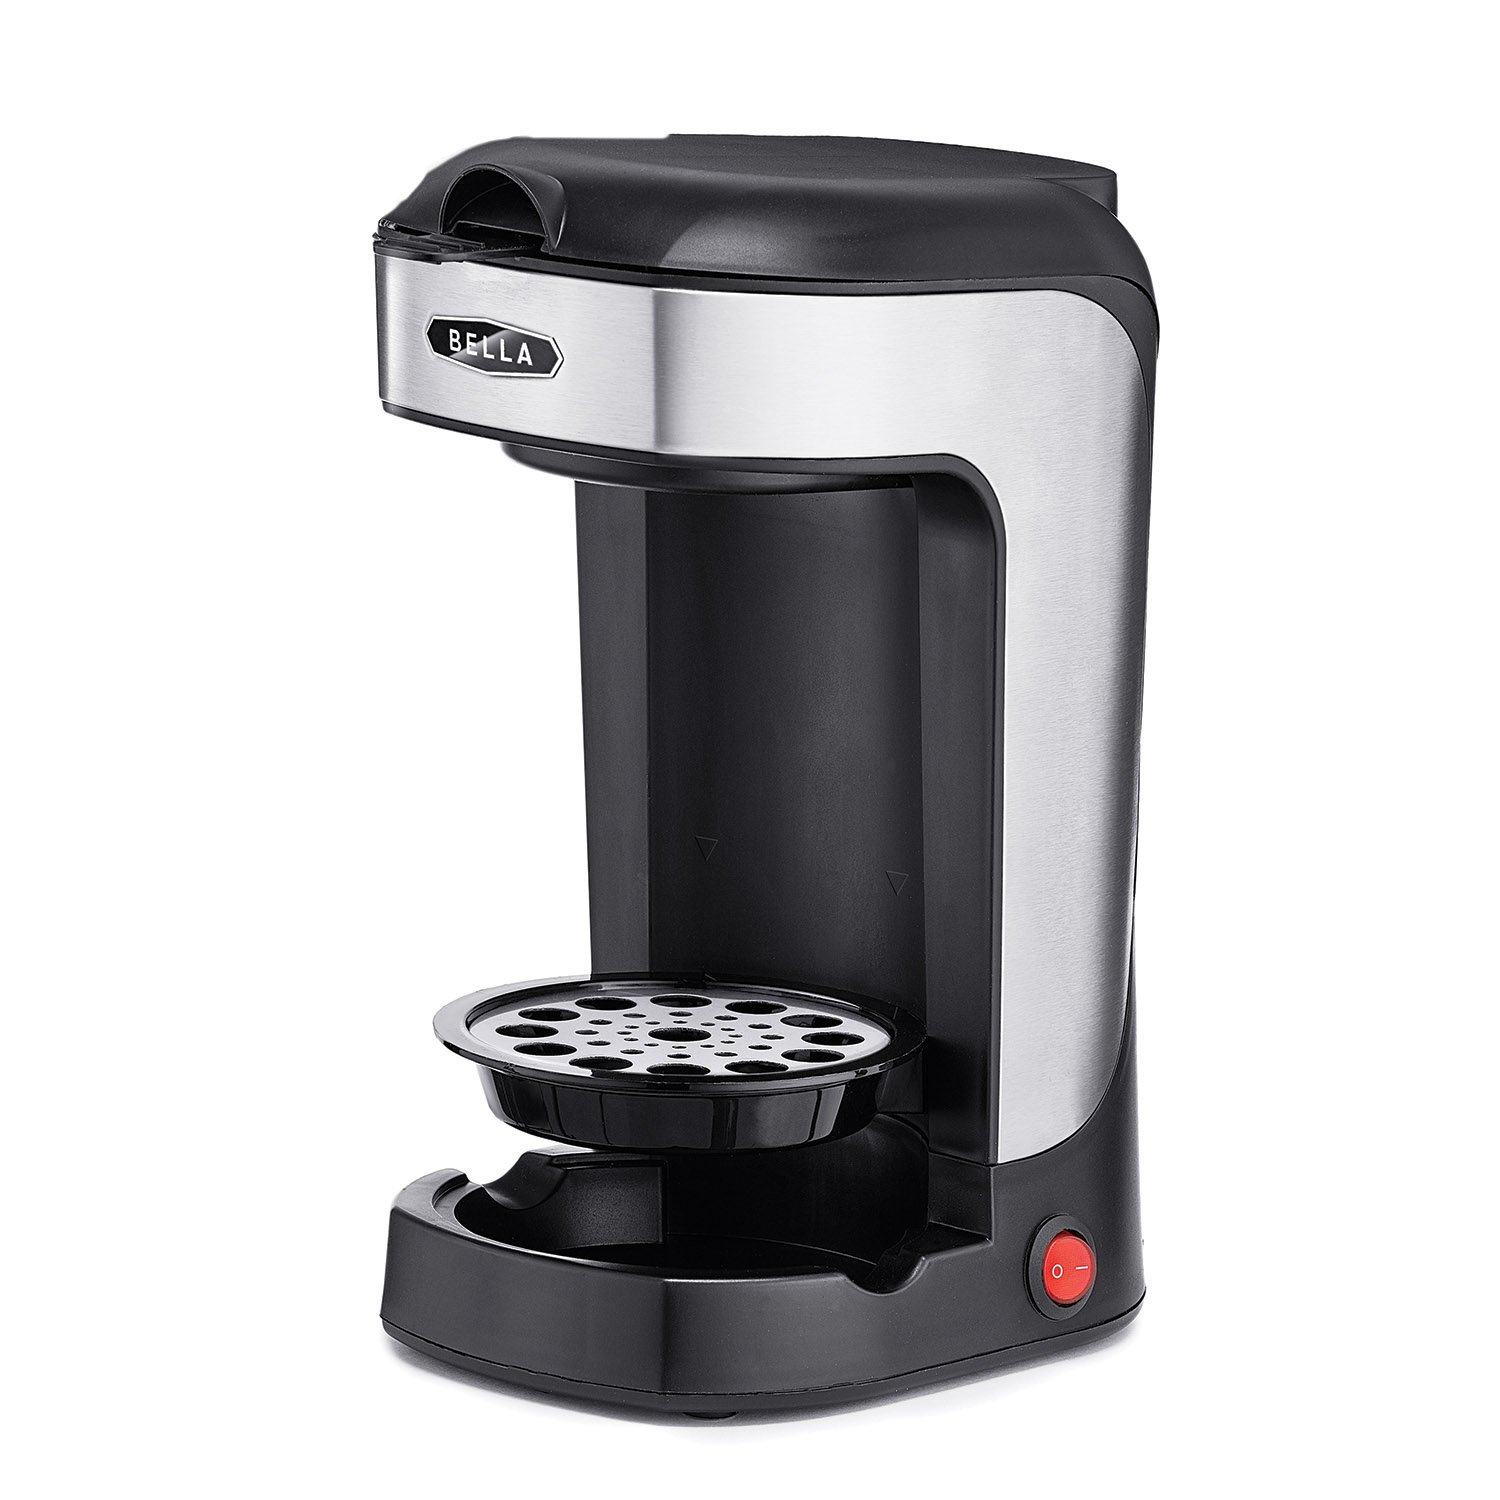 Bella BLA14436 One Scoop One Cup Coffee Maker, Black and Stainless Steel by BELLA